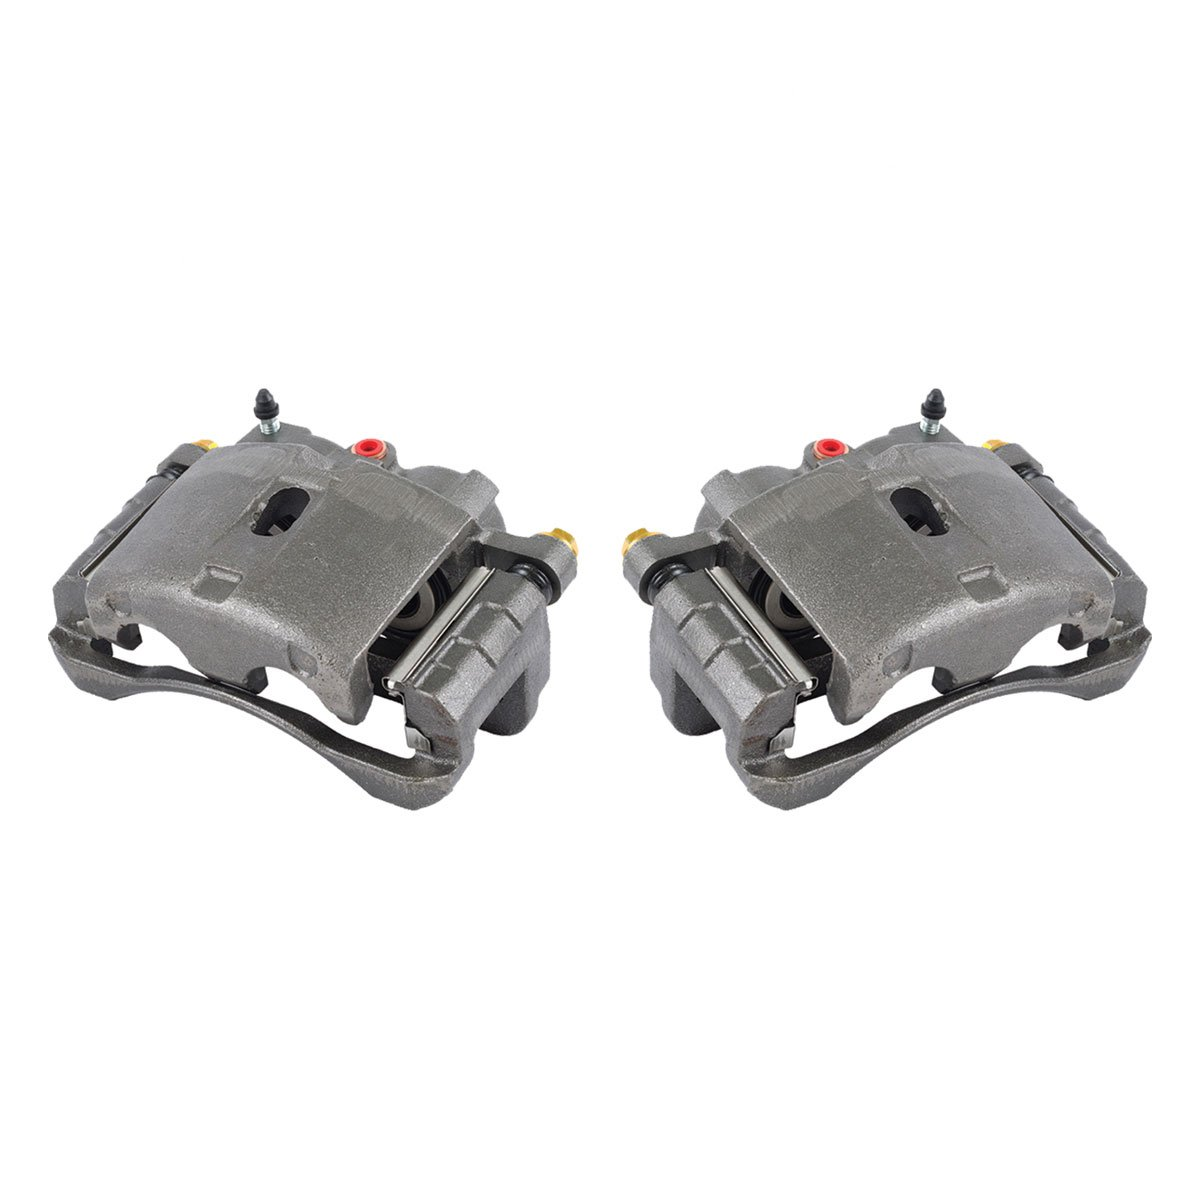 Callahan Brake Parts Premium Grade OE Semi-Loaded Calipers